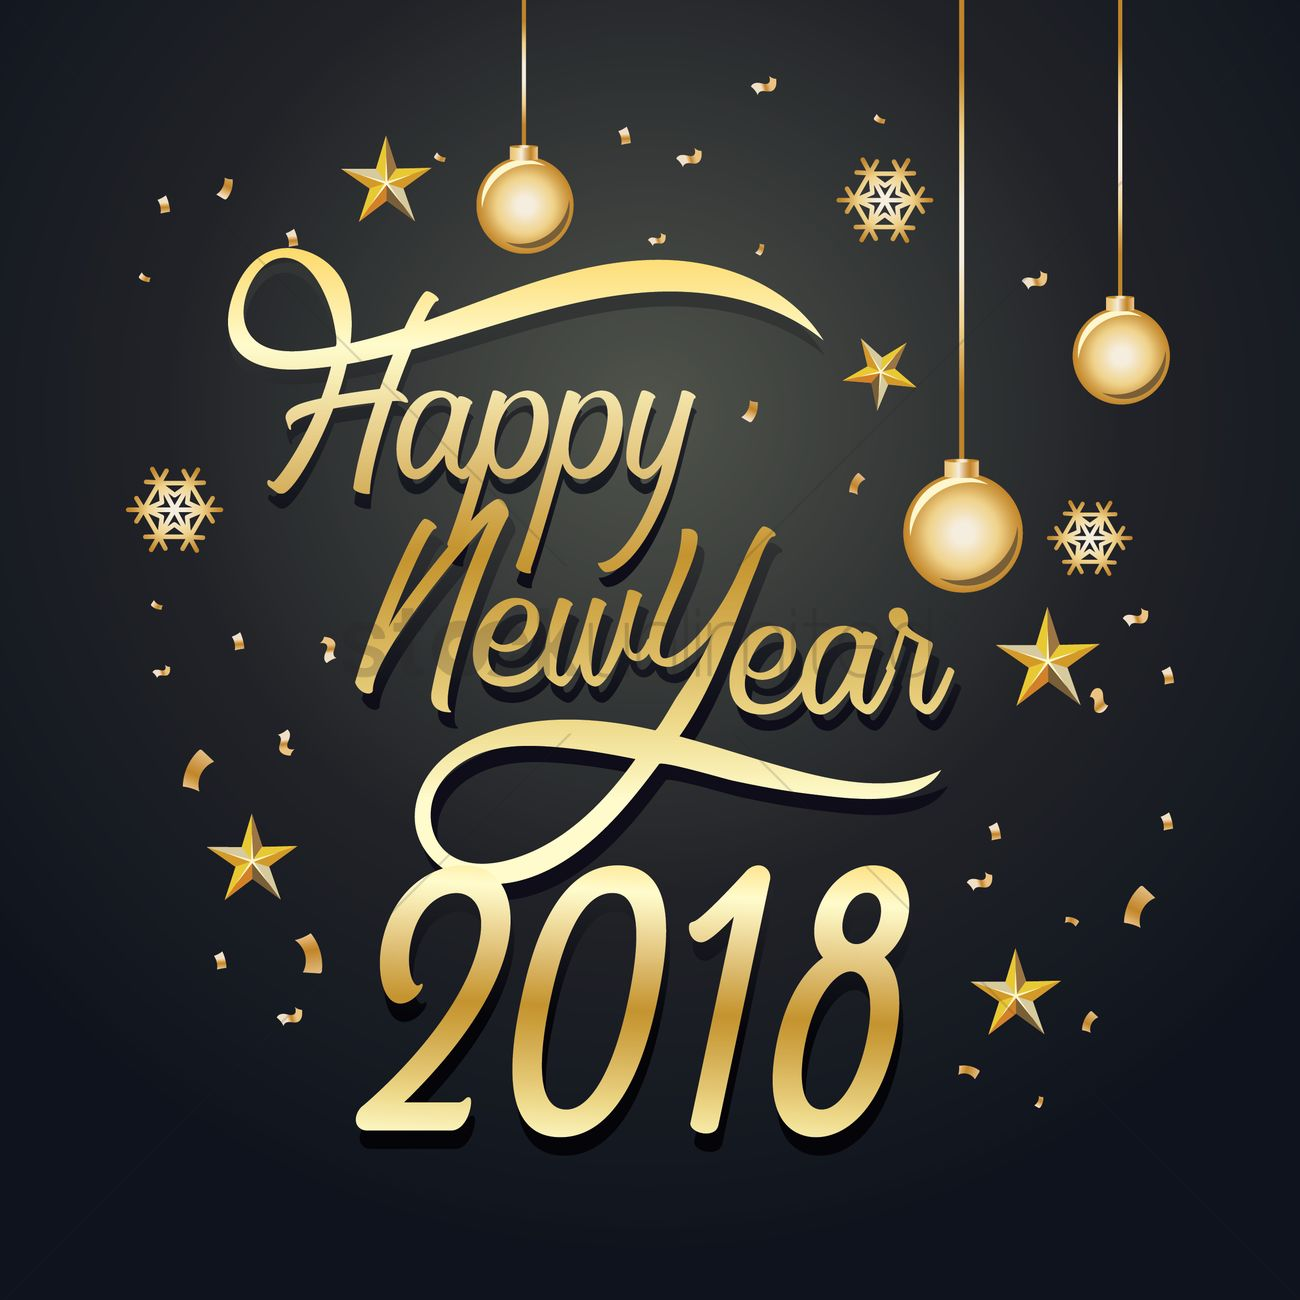 happy new year 2018 vector graphic